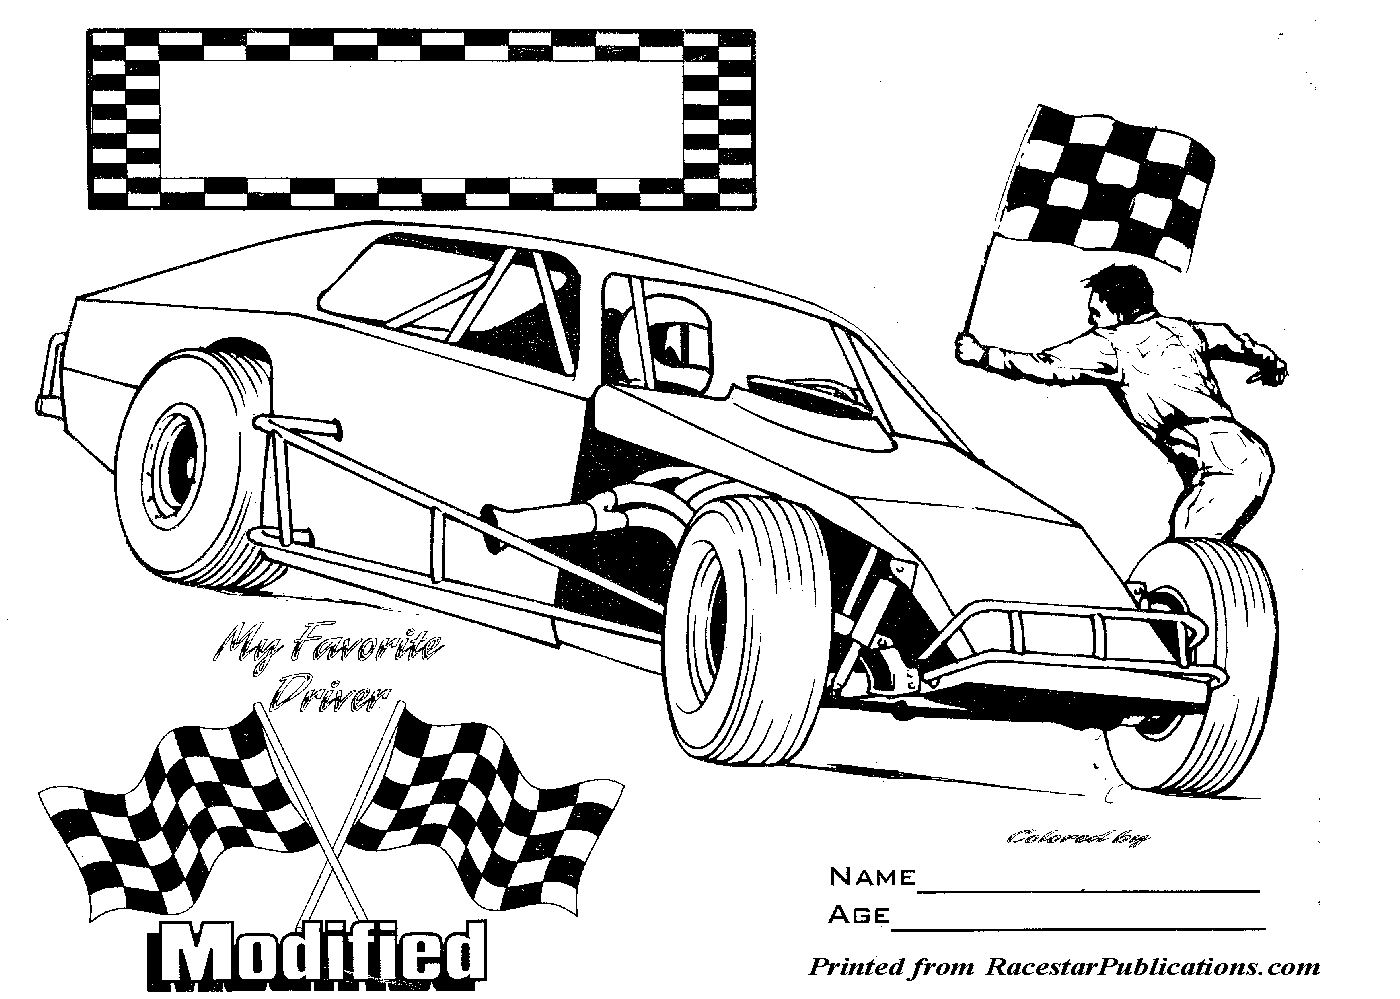 Lil\' Racer Coloring Page | RaceStar Publications